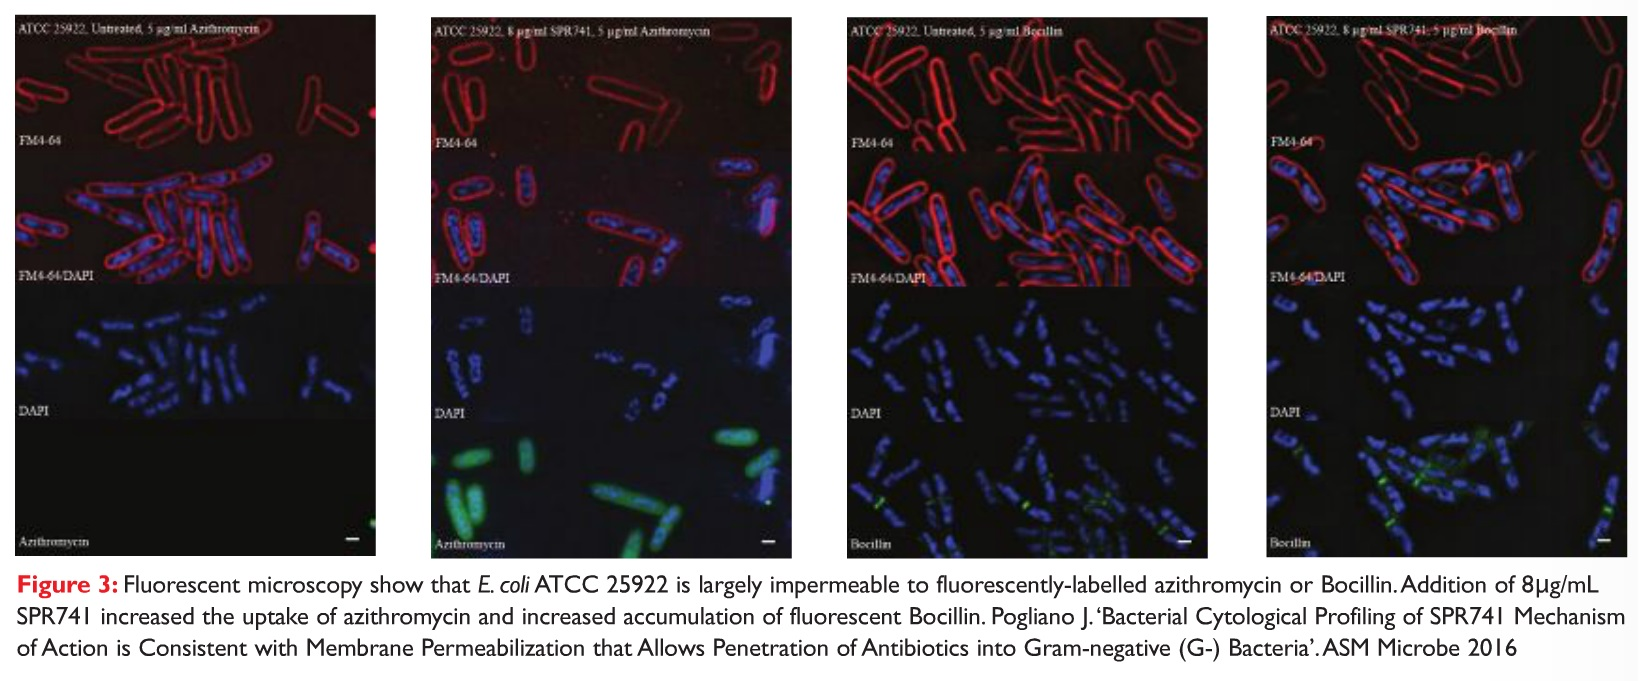 Figure 3 Fluorescent microscopy show that E. colo ATCC 25922 is largely impermeable to fluorescently-labelled azithromycin or Bocillin